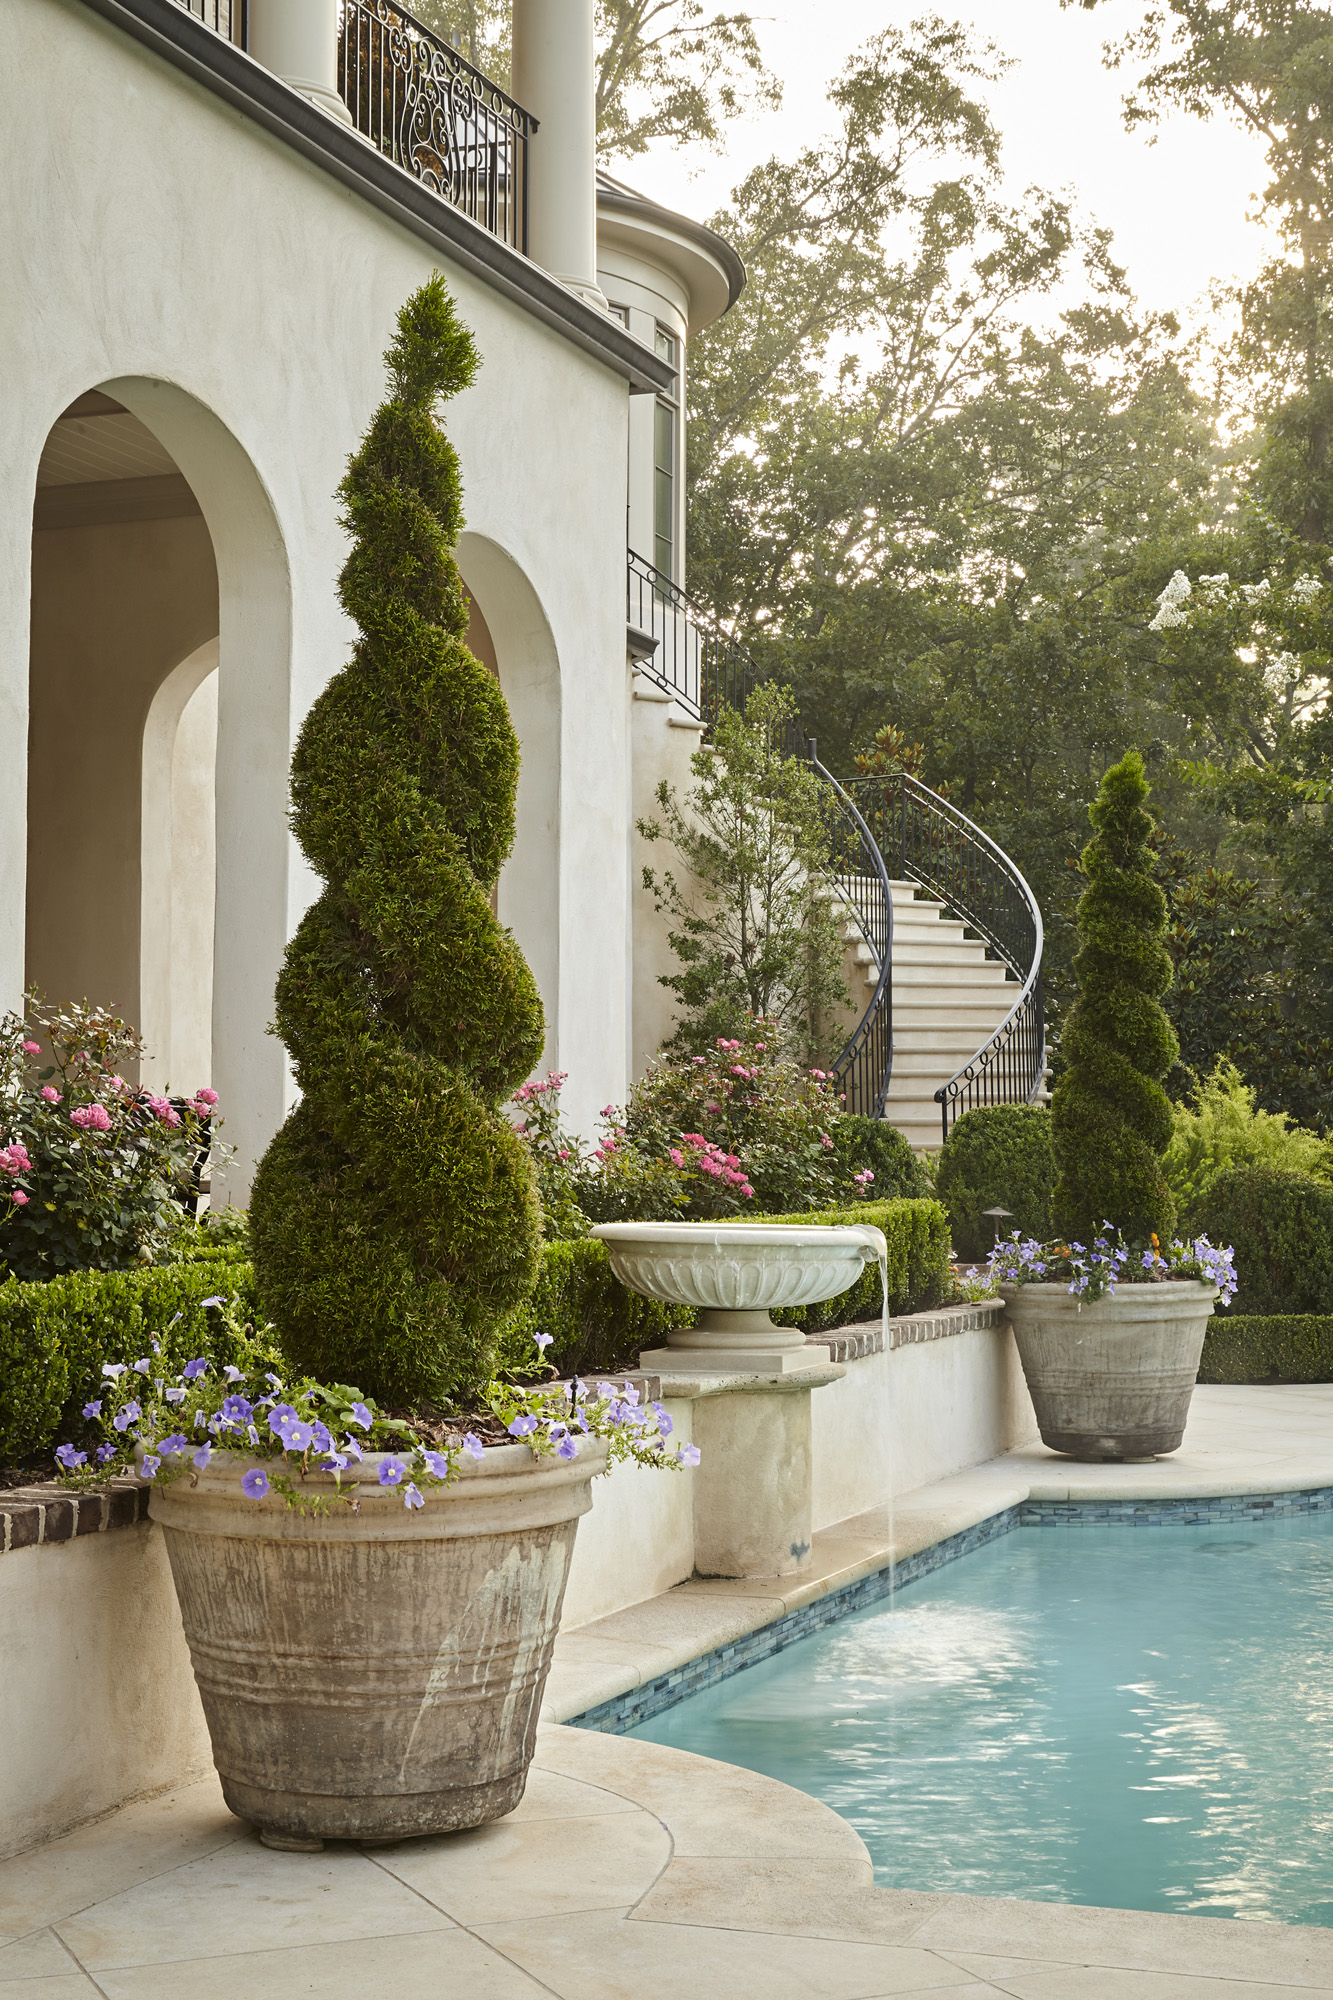 Stone urns and planters contain ornamental topiaries with shell basin fountain in Harrison Design classical French garden